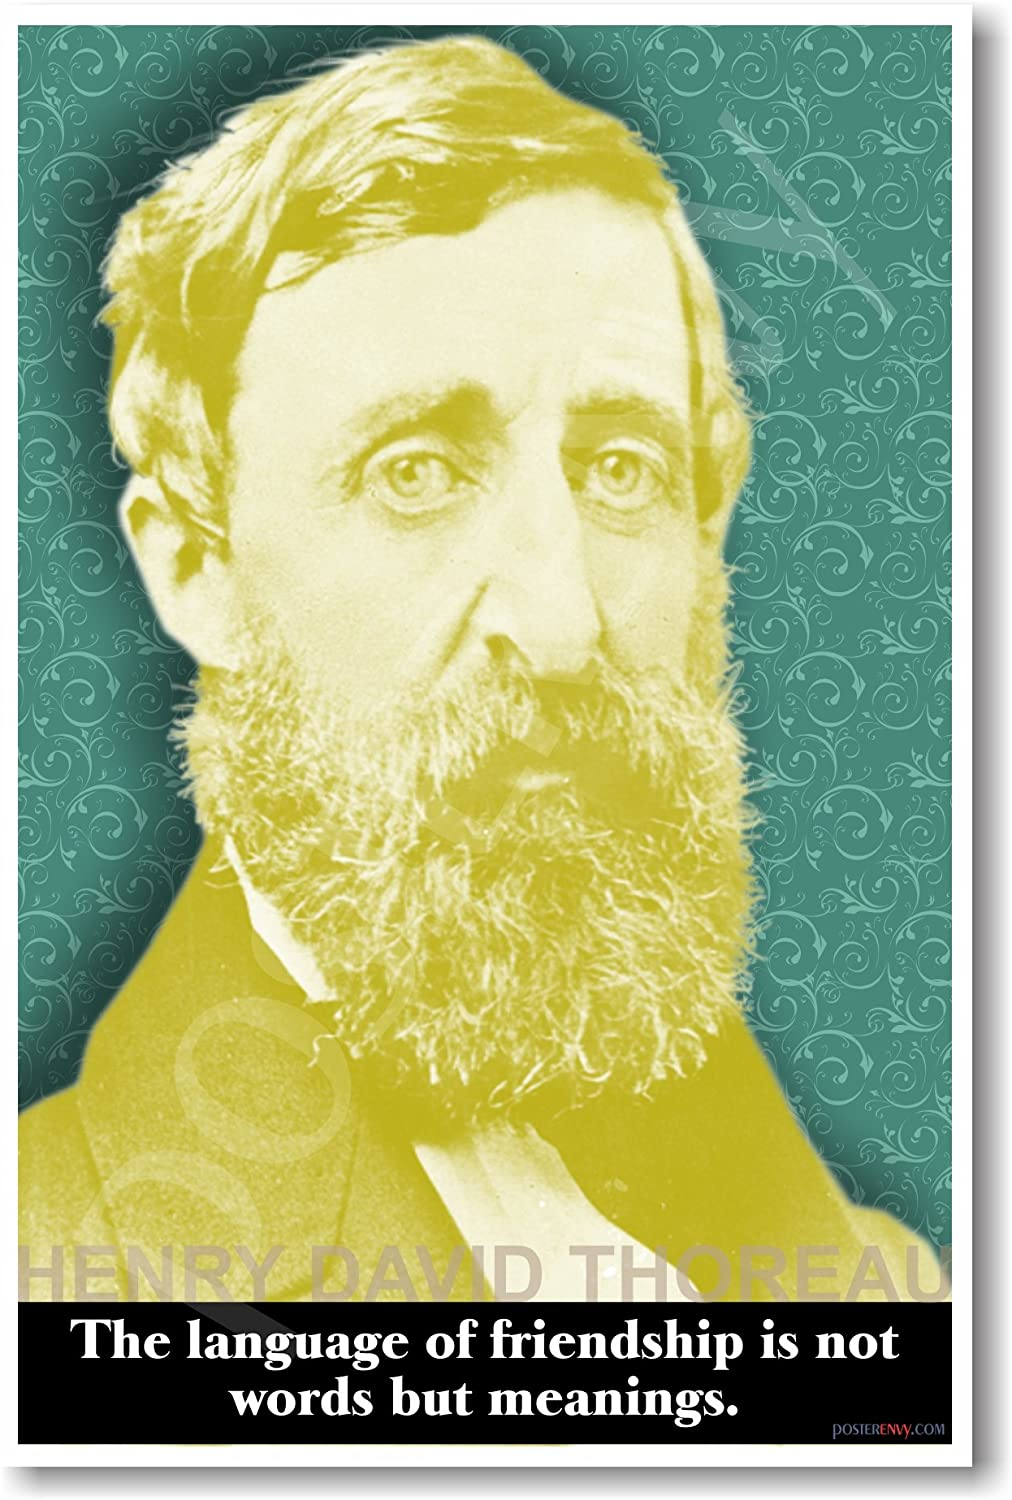 Henry David Thoreau - The Language of Friendship Is Not Words but Meanings - Classroom Poster